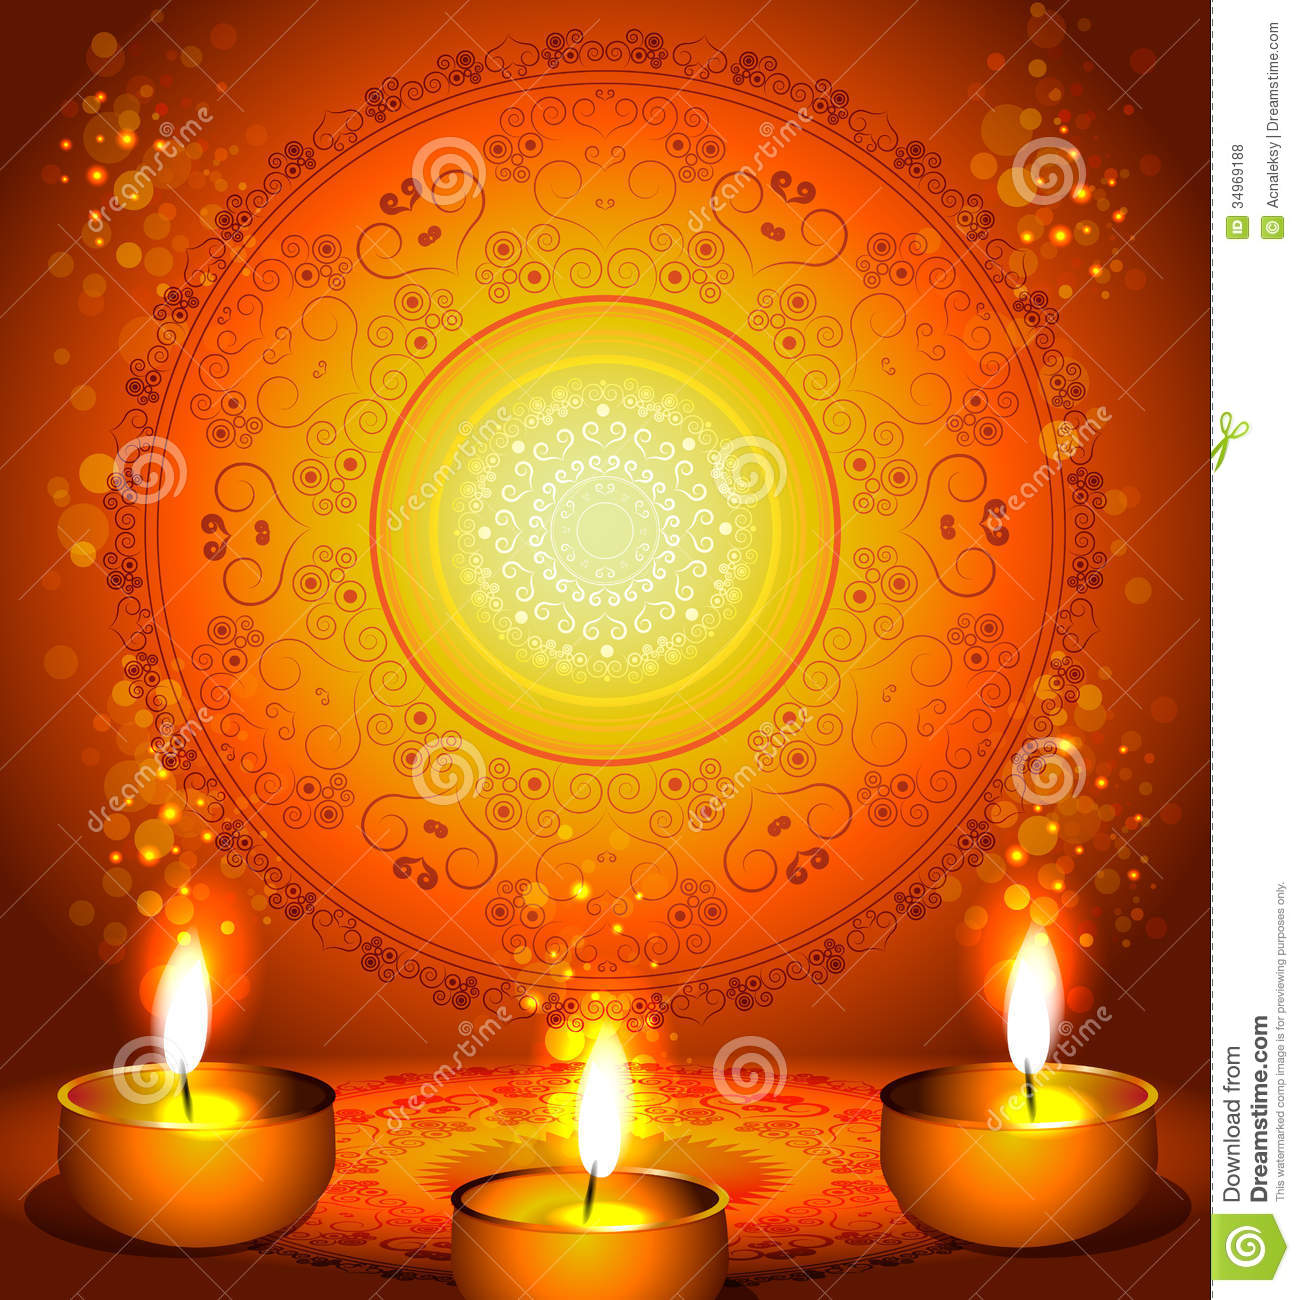 Background For Diwali Festival With Lamps Royalty Free